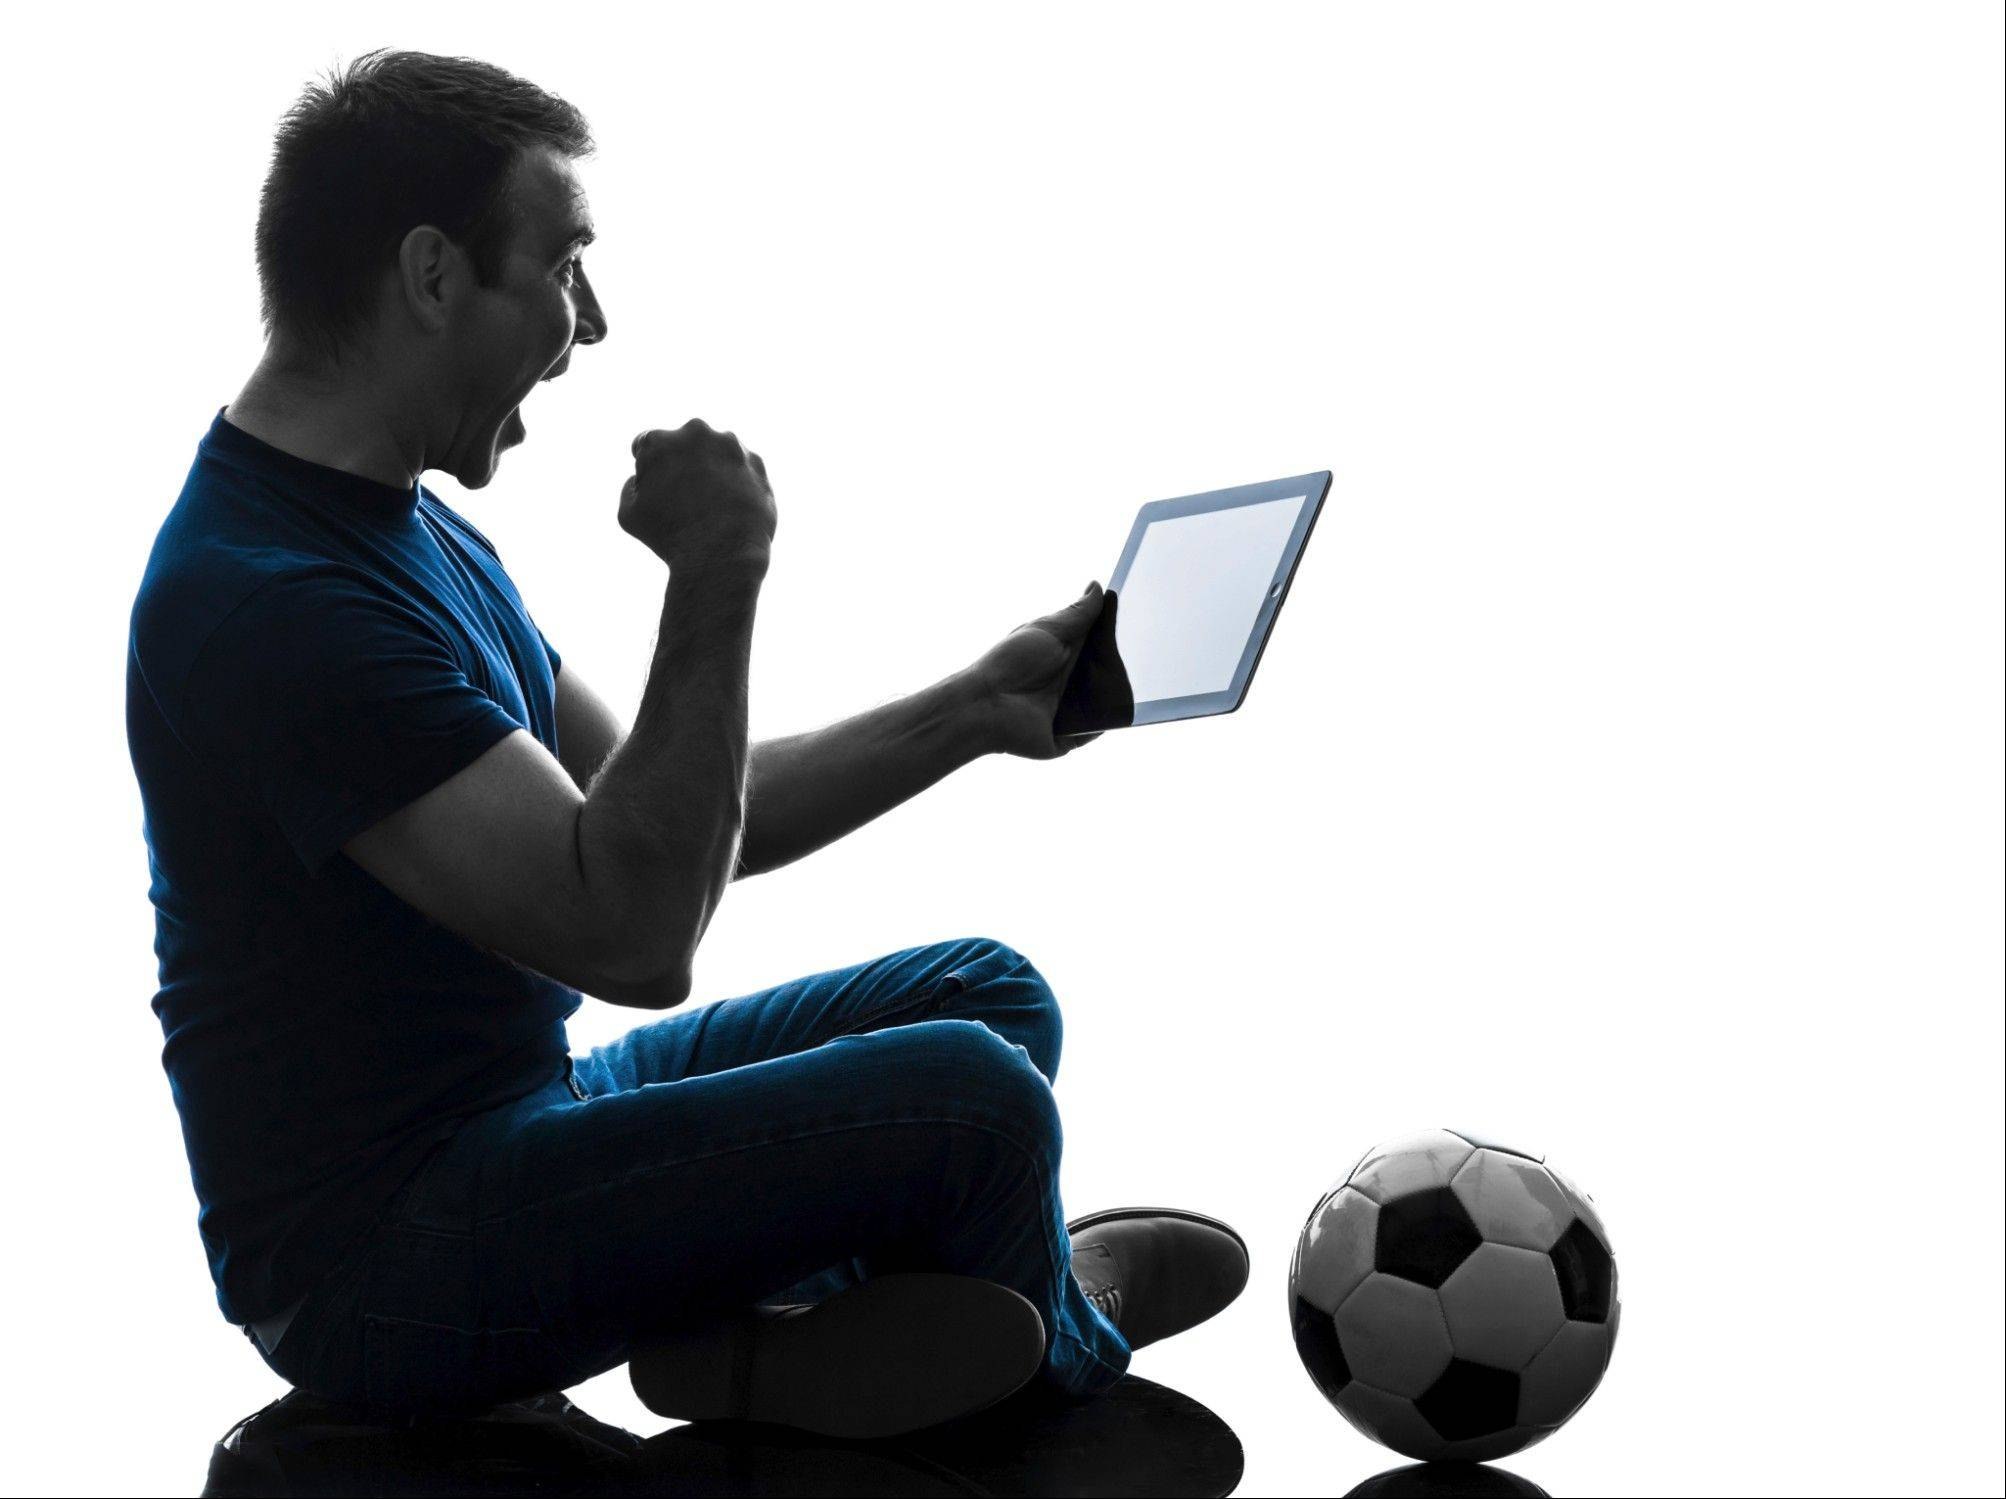 More than 33.5 million people now play fantasy sports in the U.S., according to the trade association, with leagues based on the NFL far outpacing Major League Baseball as the most popular. Fantasy sports are gaining popularity outside the U.S. also, with leagues for soccer and cricket.